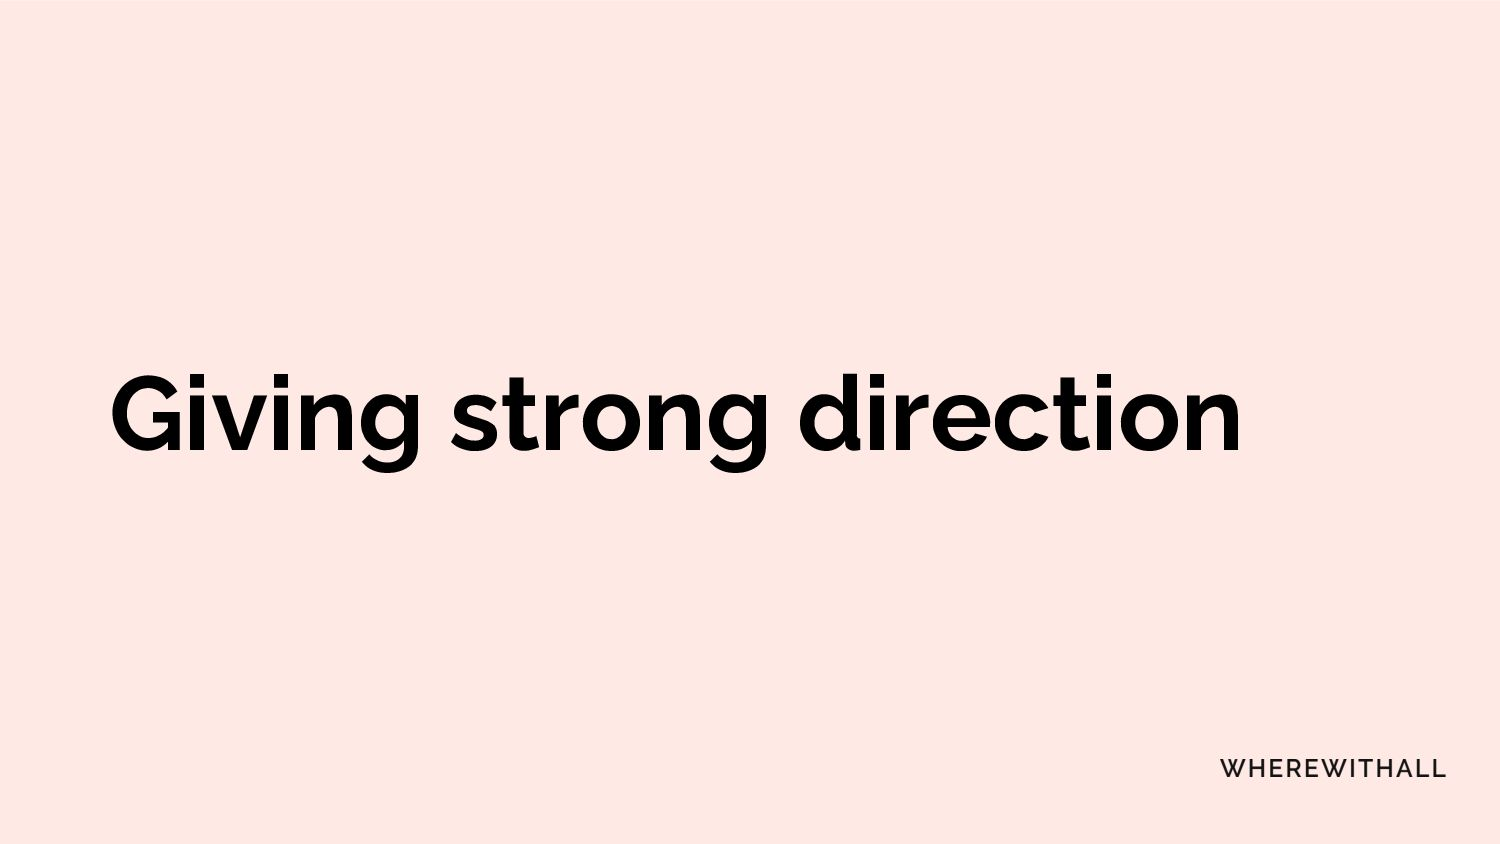 Reframe this skill in terms of fairness.